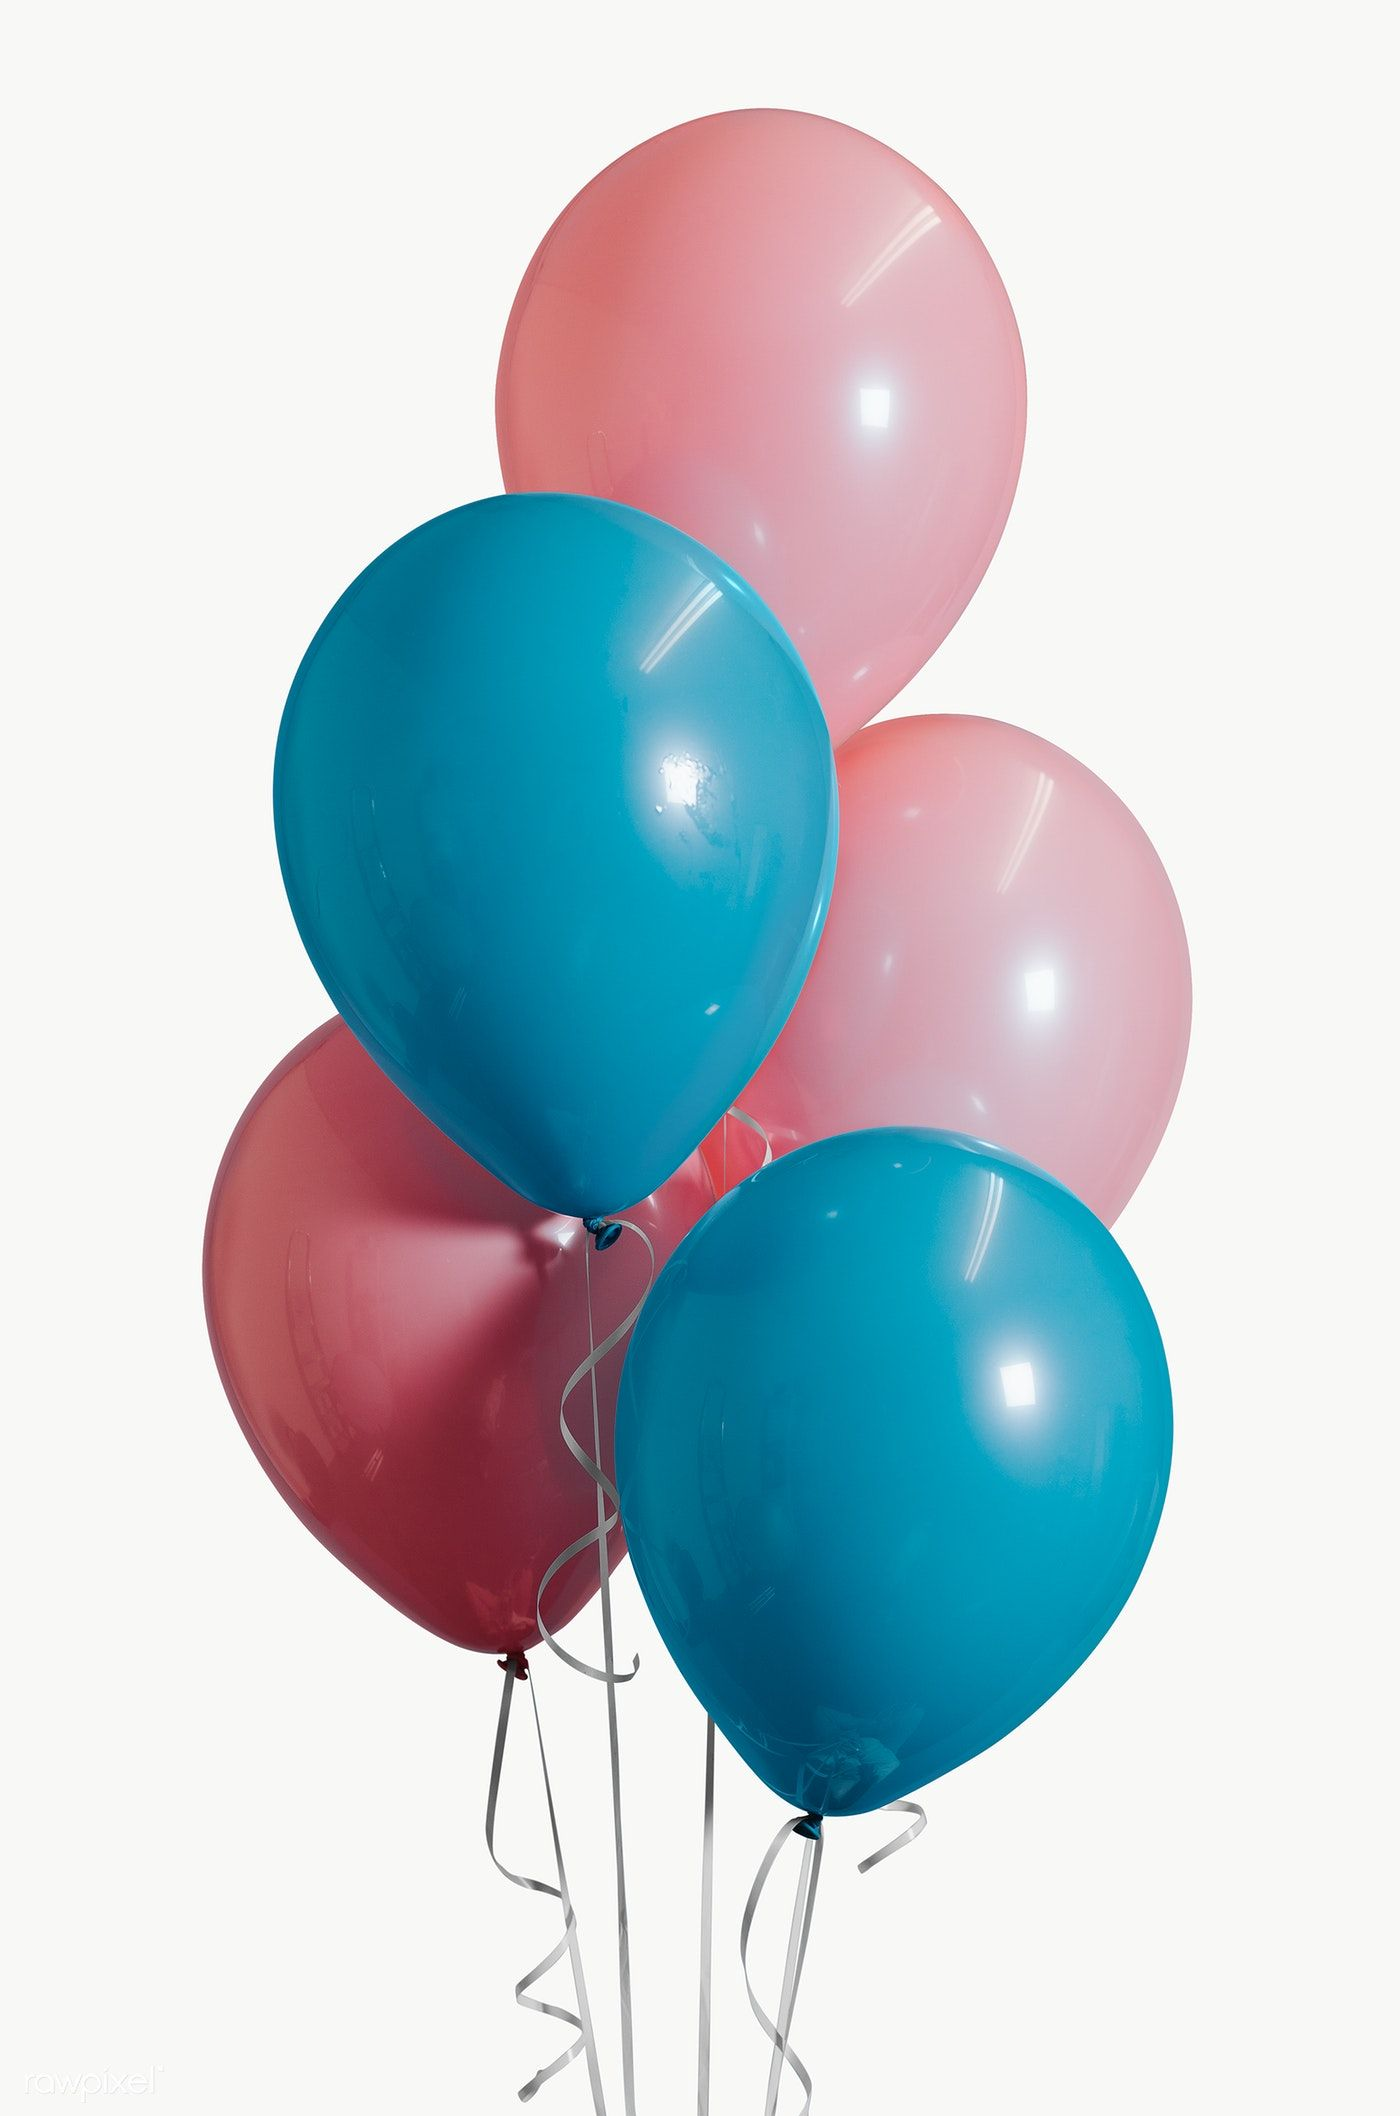 Download Premium Png Of Pastel Pink And Blue Balloons Png Transparent Blue Balloons Balloons Photography Balloons